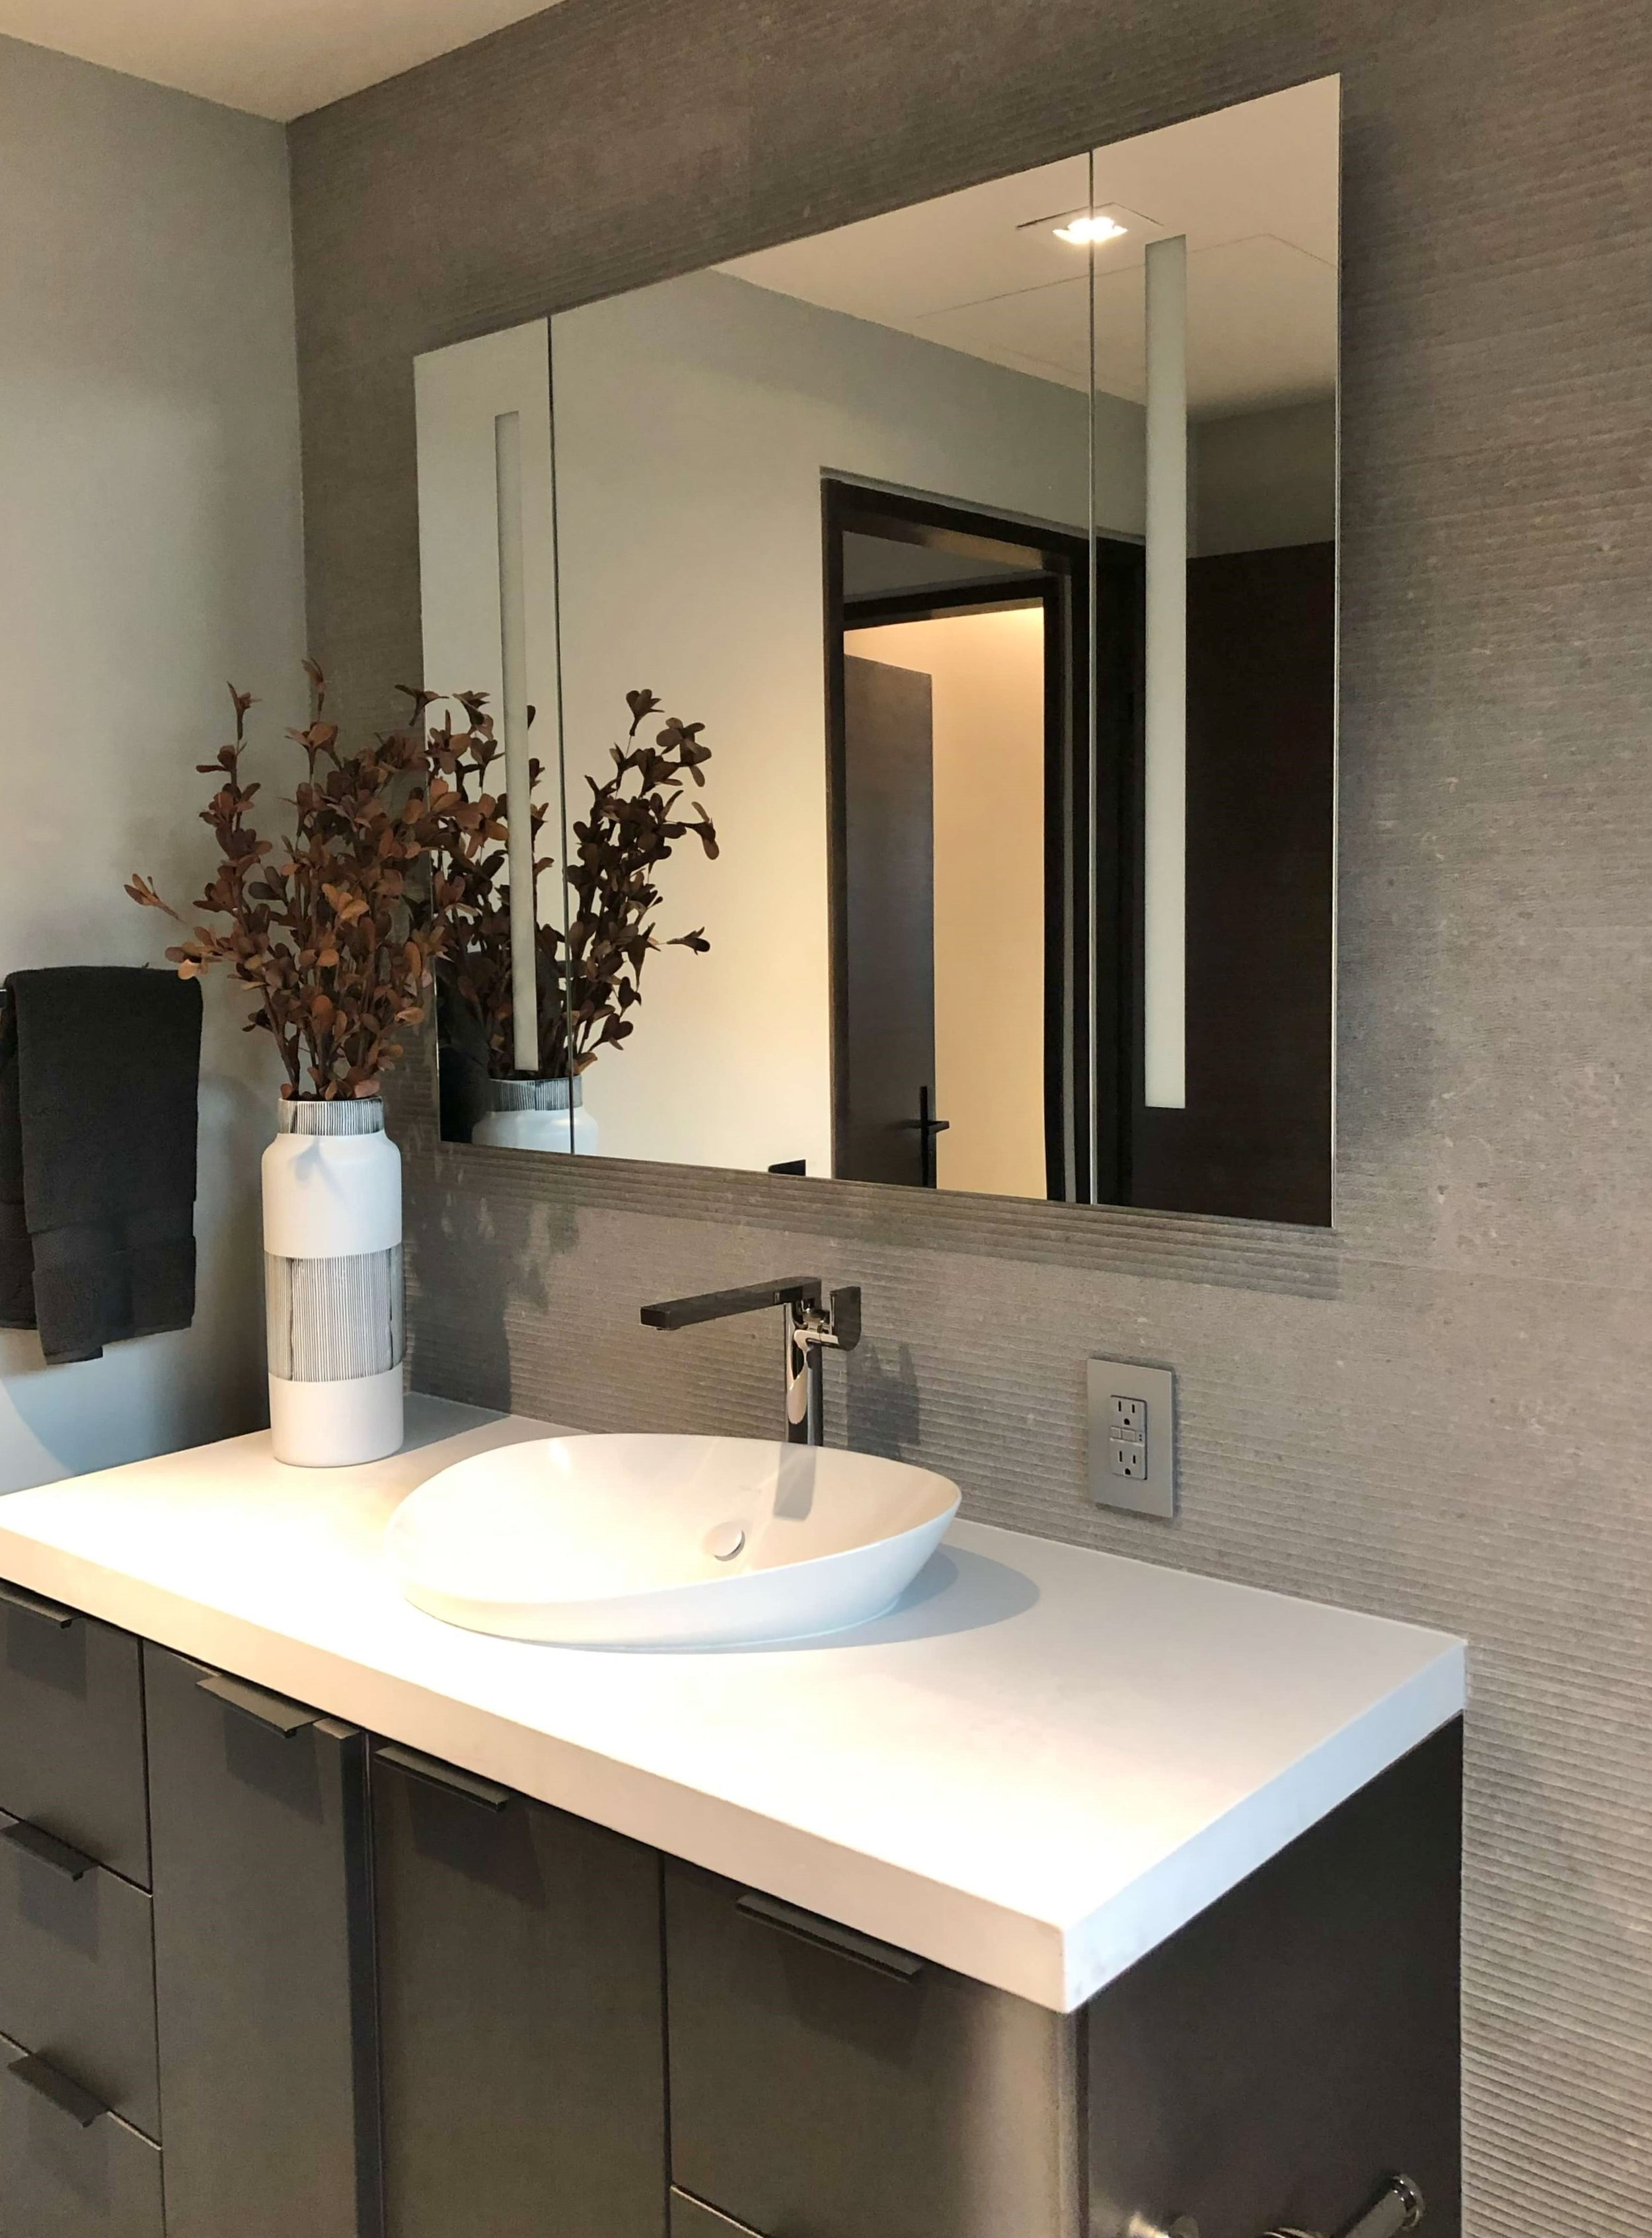 Guest bath vanity with contemporary medicine cabinet on tiny mosaic tiled wall in The New American Remodel 2019. #hometour #vesselsink #bathroom #contemporaryhome #medicinecabinet